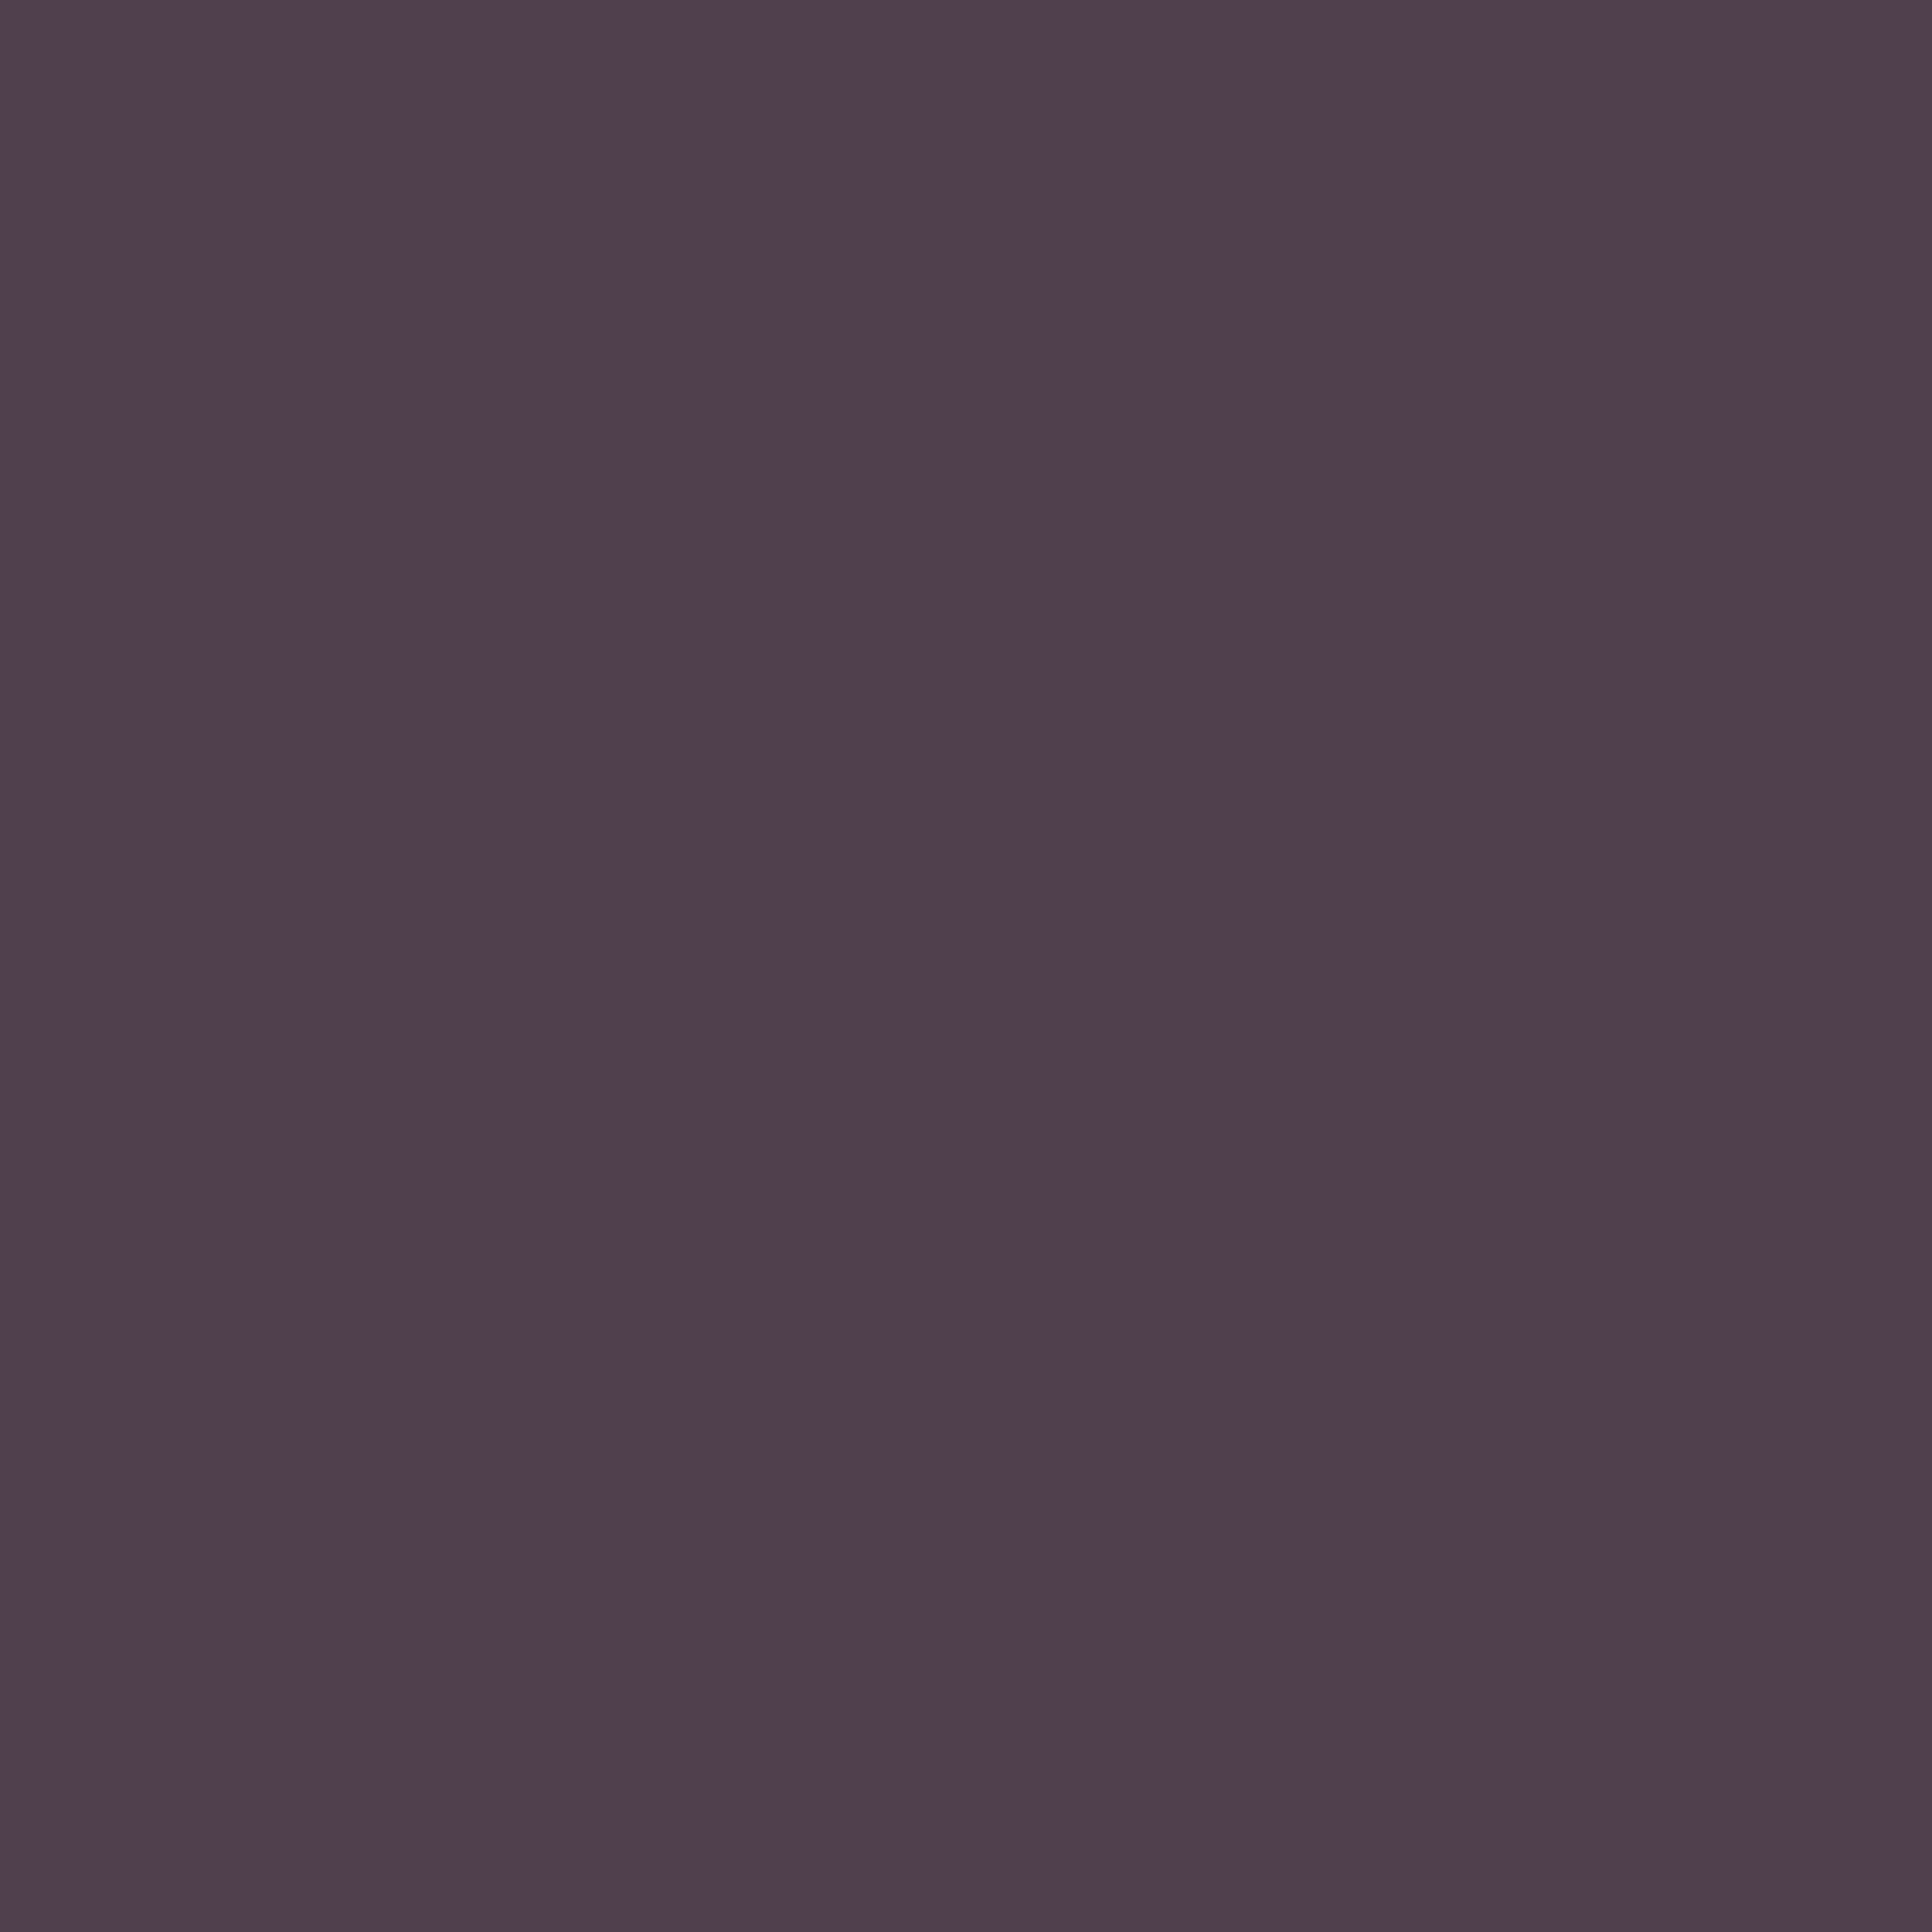 3600x3600 Purple Taupe Solid Color Background